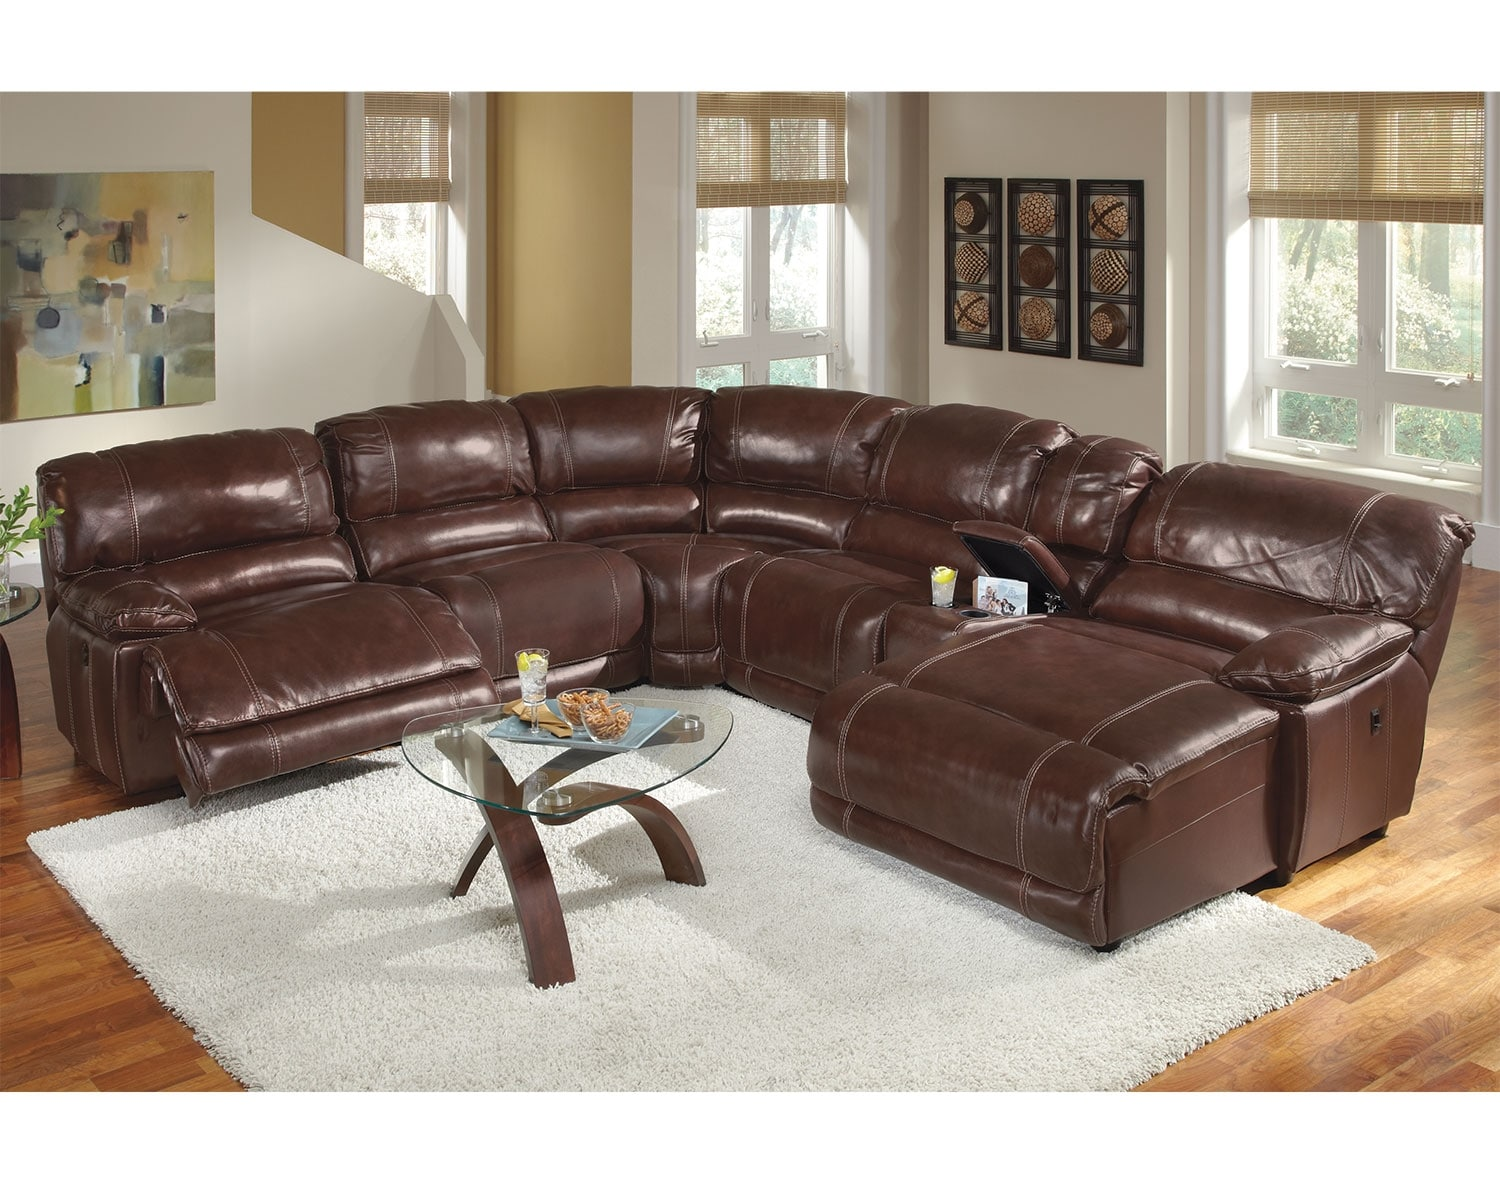 Leather living room furniture - The St Malo Collection Burgundy